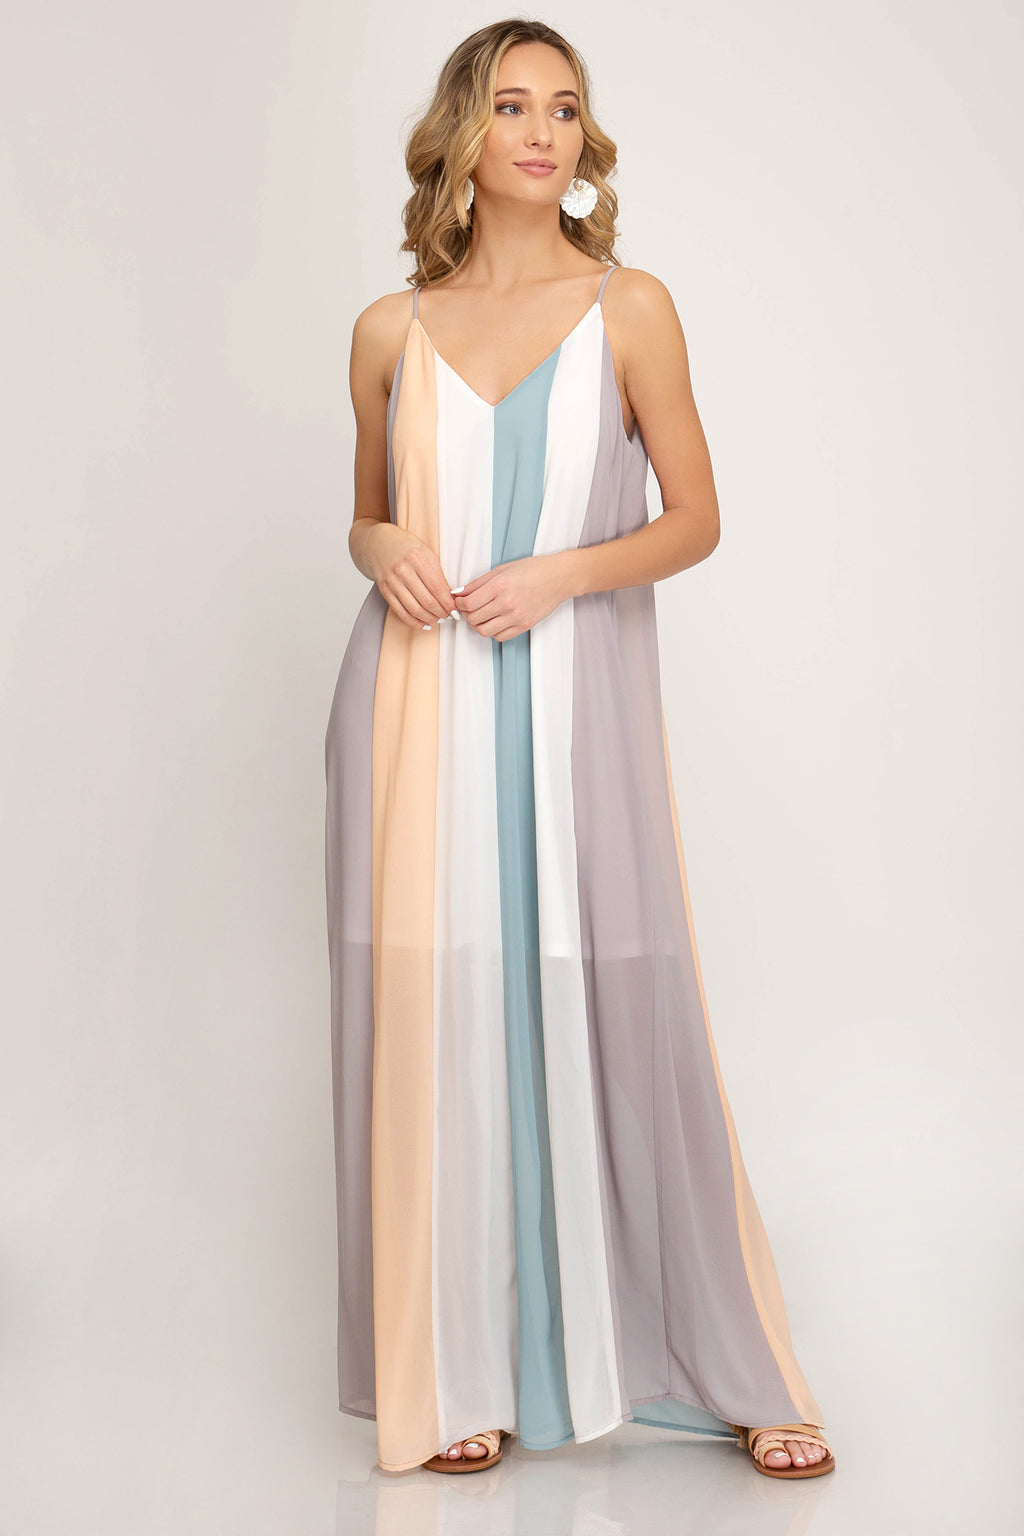 Grey + Peach + Blue | Color Block Maxi Dress